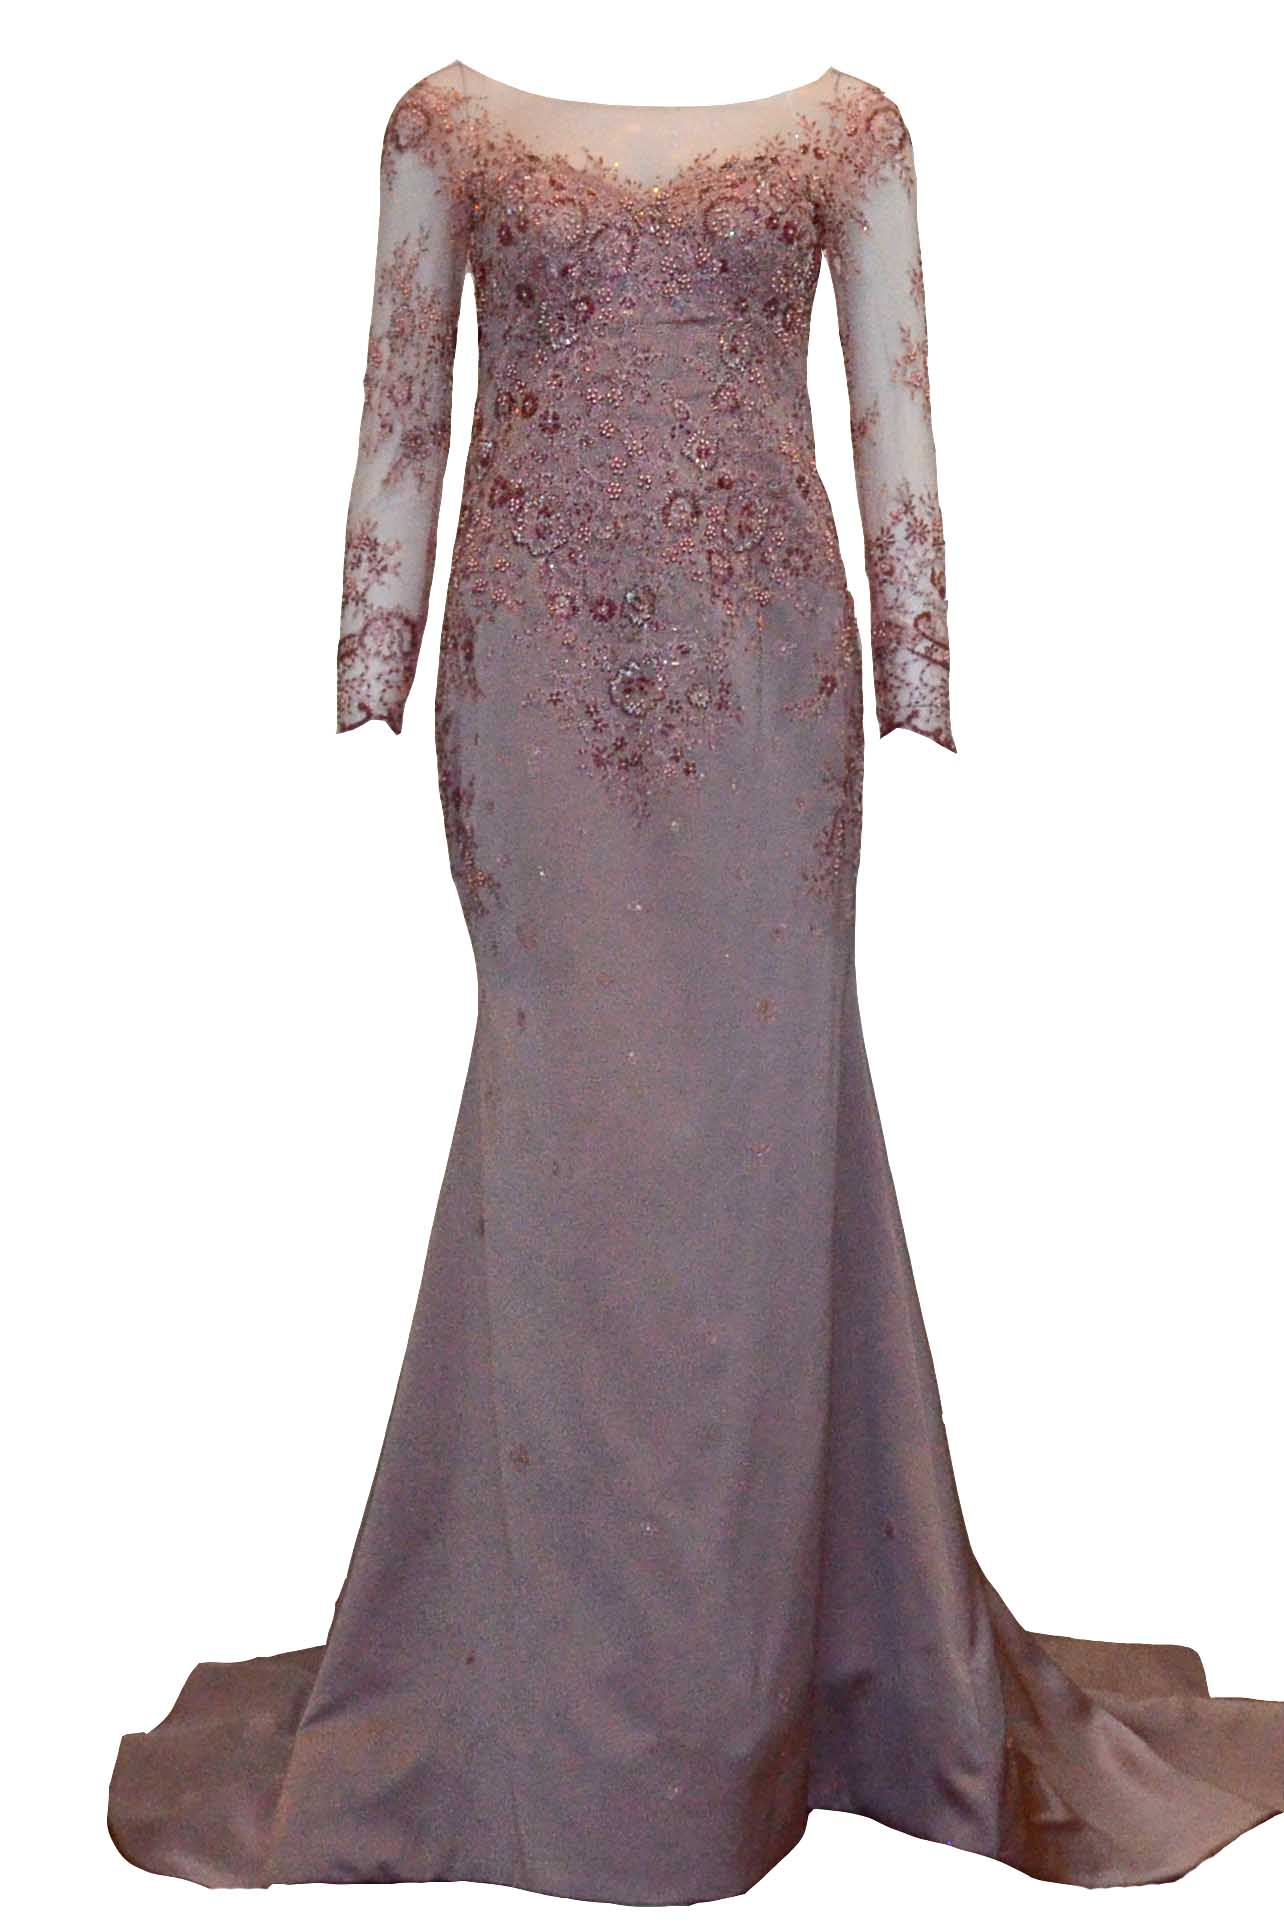 Rent: Sisca ZH - Long Sleeves Brocade Evening Gown